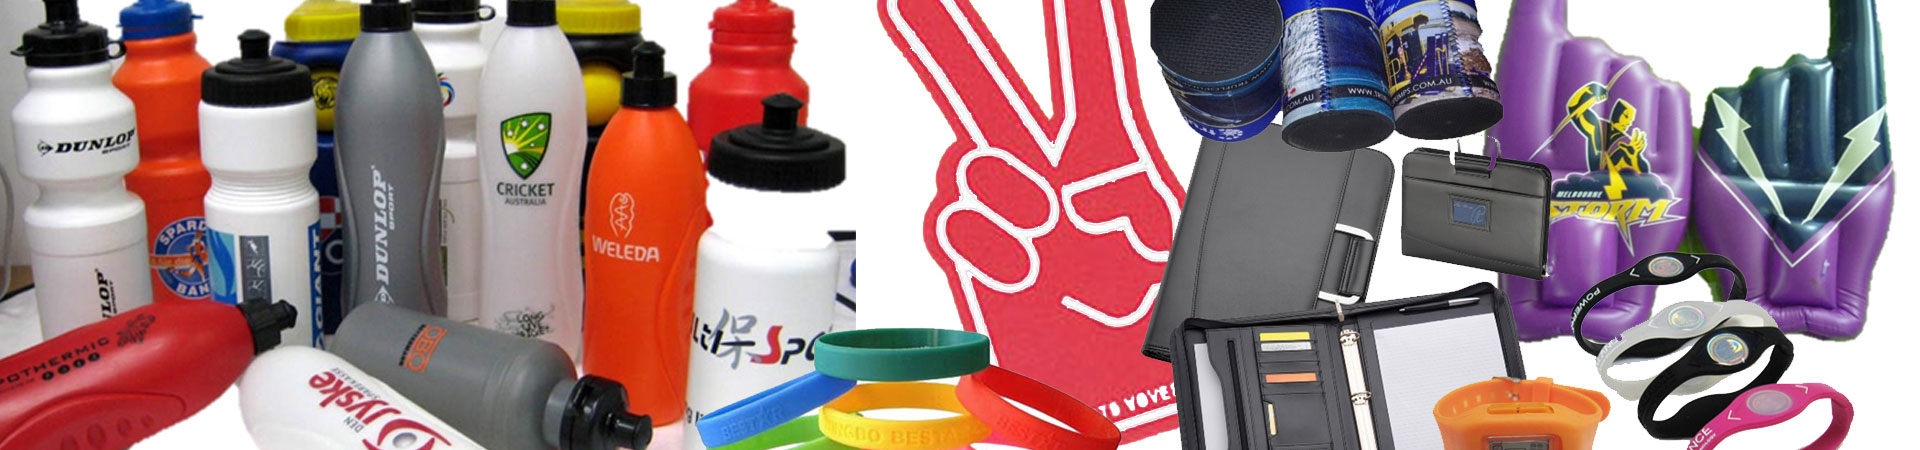 Promotional products custom printing and design